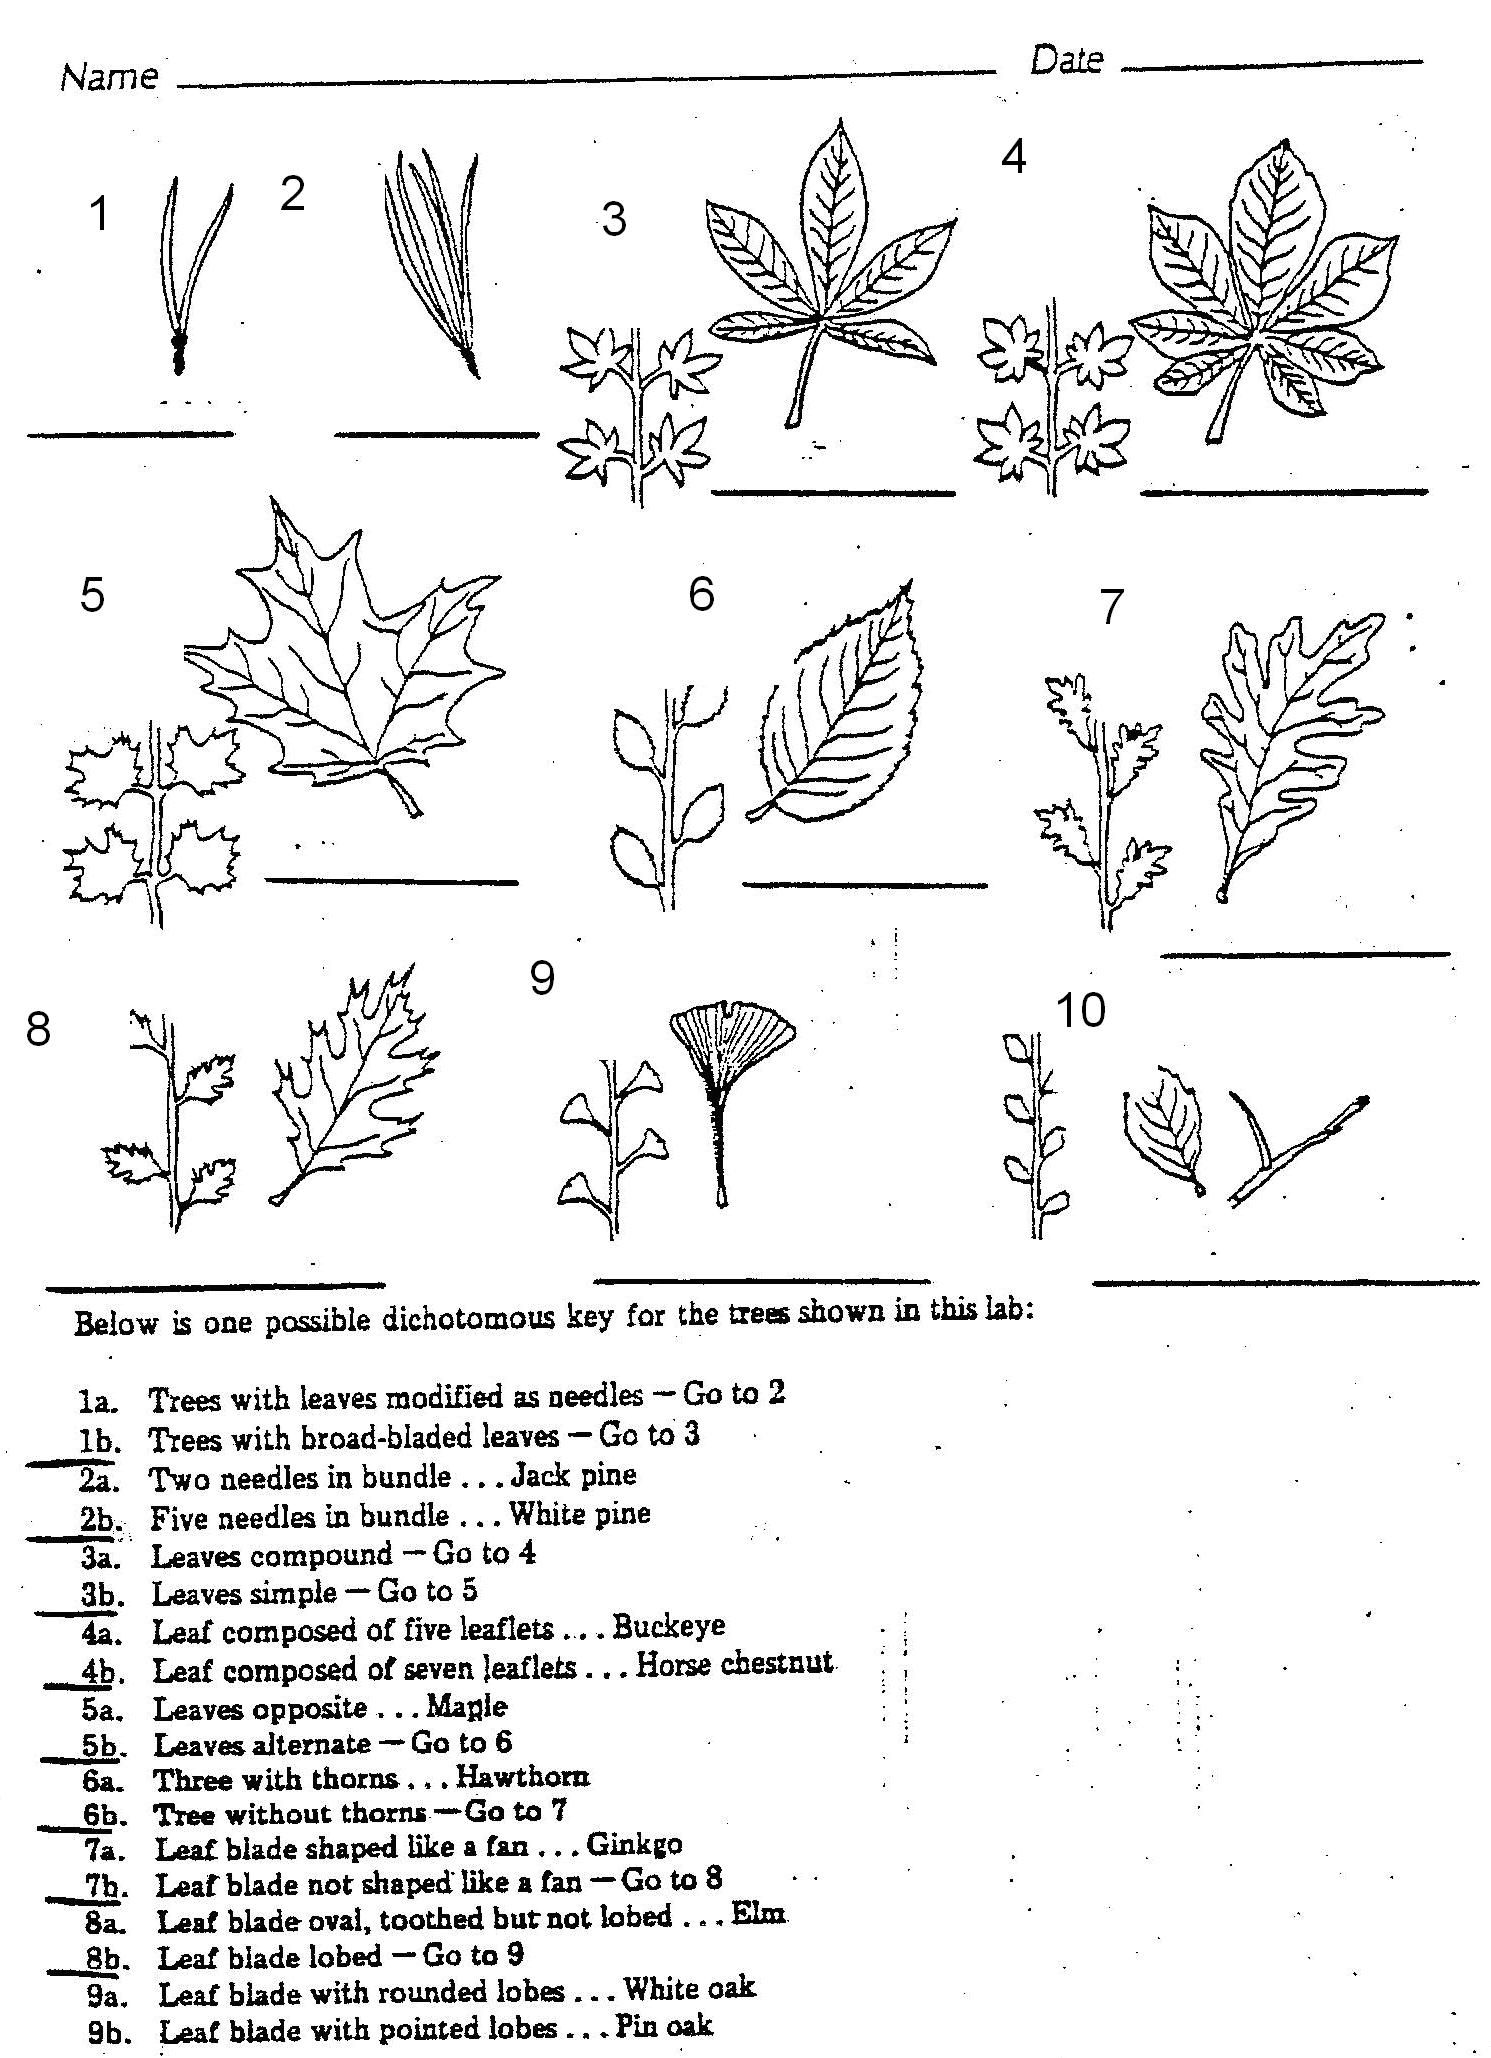 Plants 7 Leaf Tree Id Key Review Dichotomous Keys